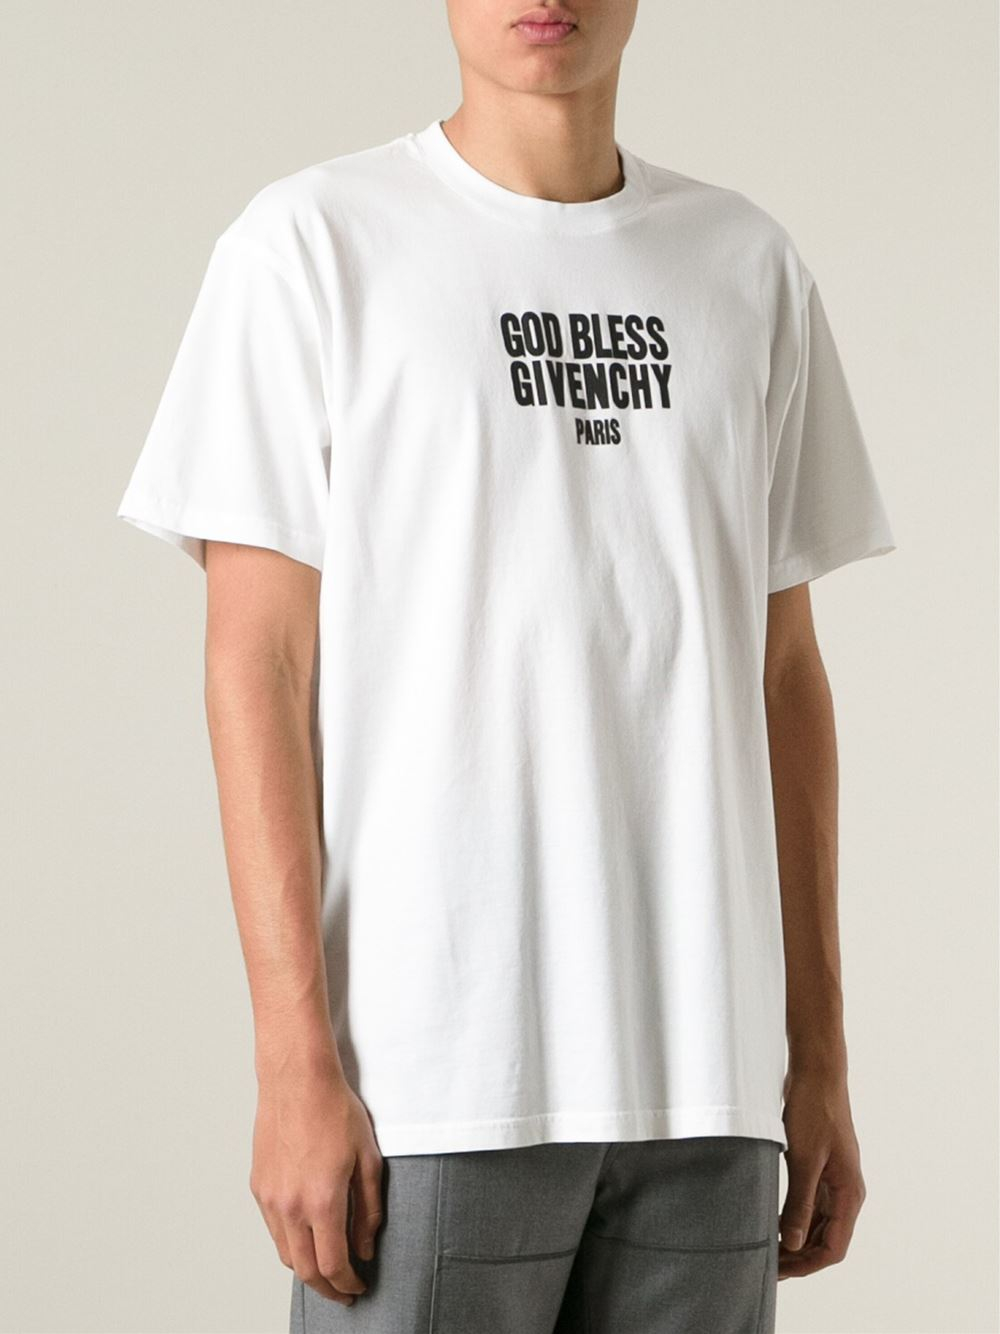 givenchy god bless cotton t shirt in white for men lyst. Black Bedroom Furniture Sets. Home Design Ideas